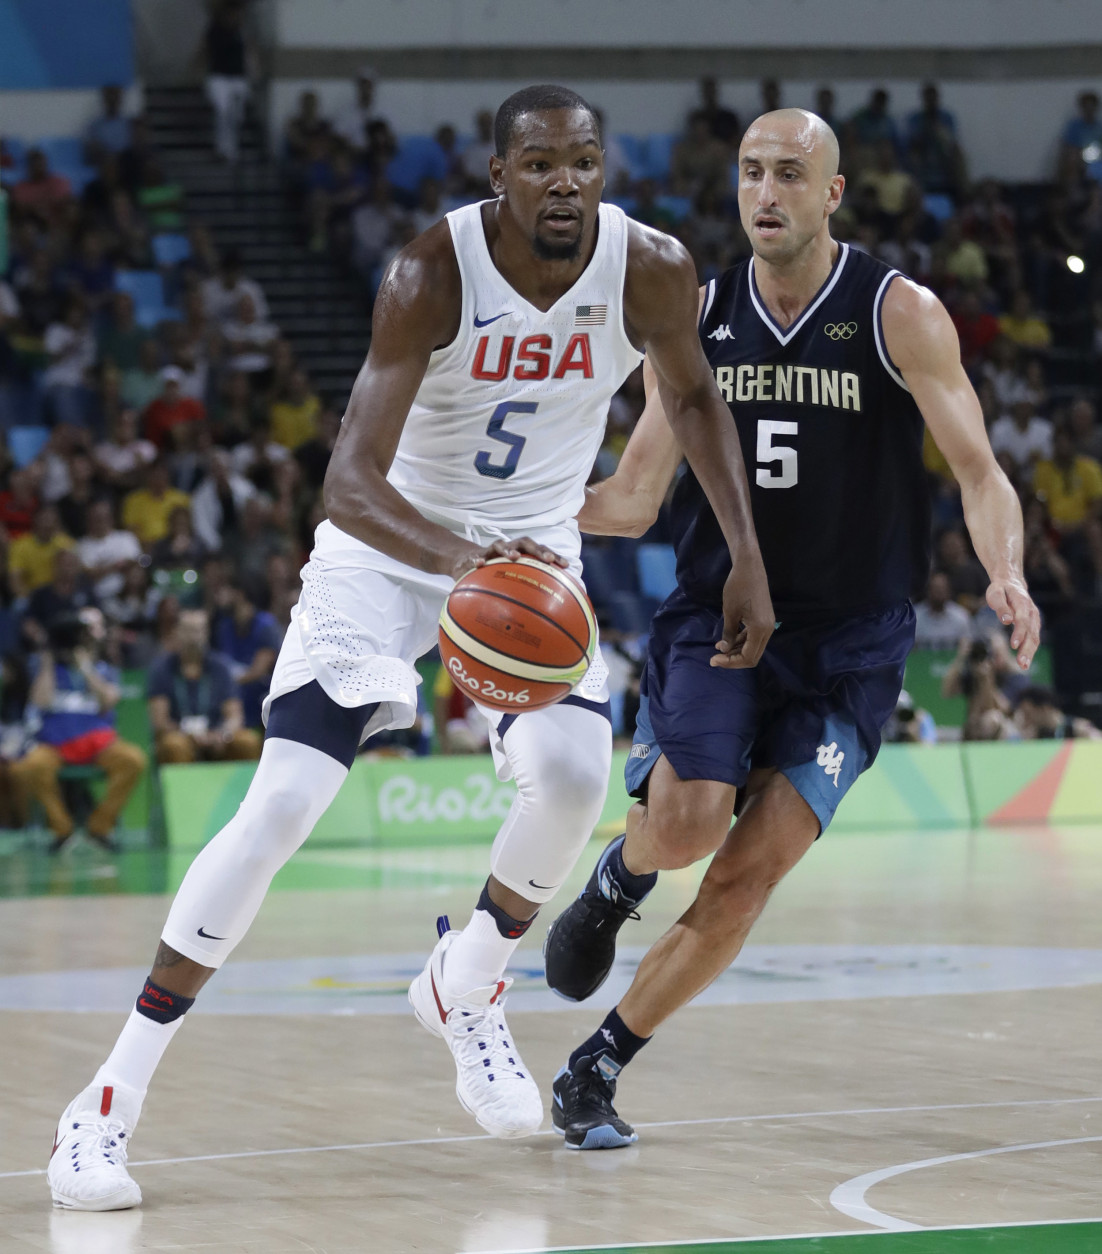 United States' Kevin Durant, left, drives around Argentina's Manu Ginobili, right, during a men's quarterfinal round basketball game at the 2016 Summer Olympics in Rio de Janeiro, Brazil, Wednesday, Aug. 17, 2016. (AP Photo/Eric Gay)